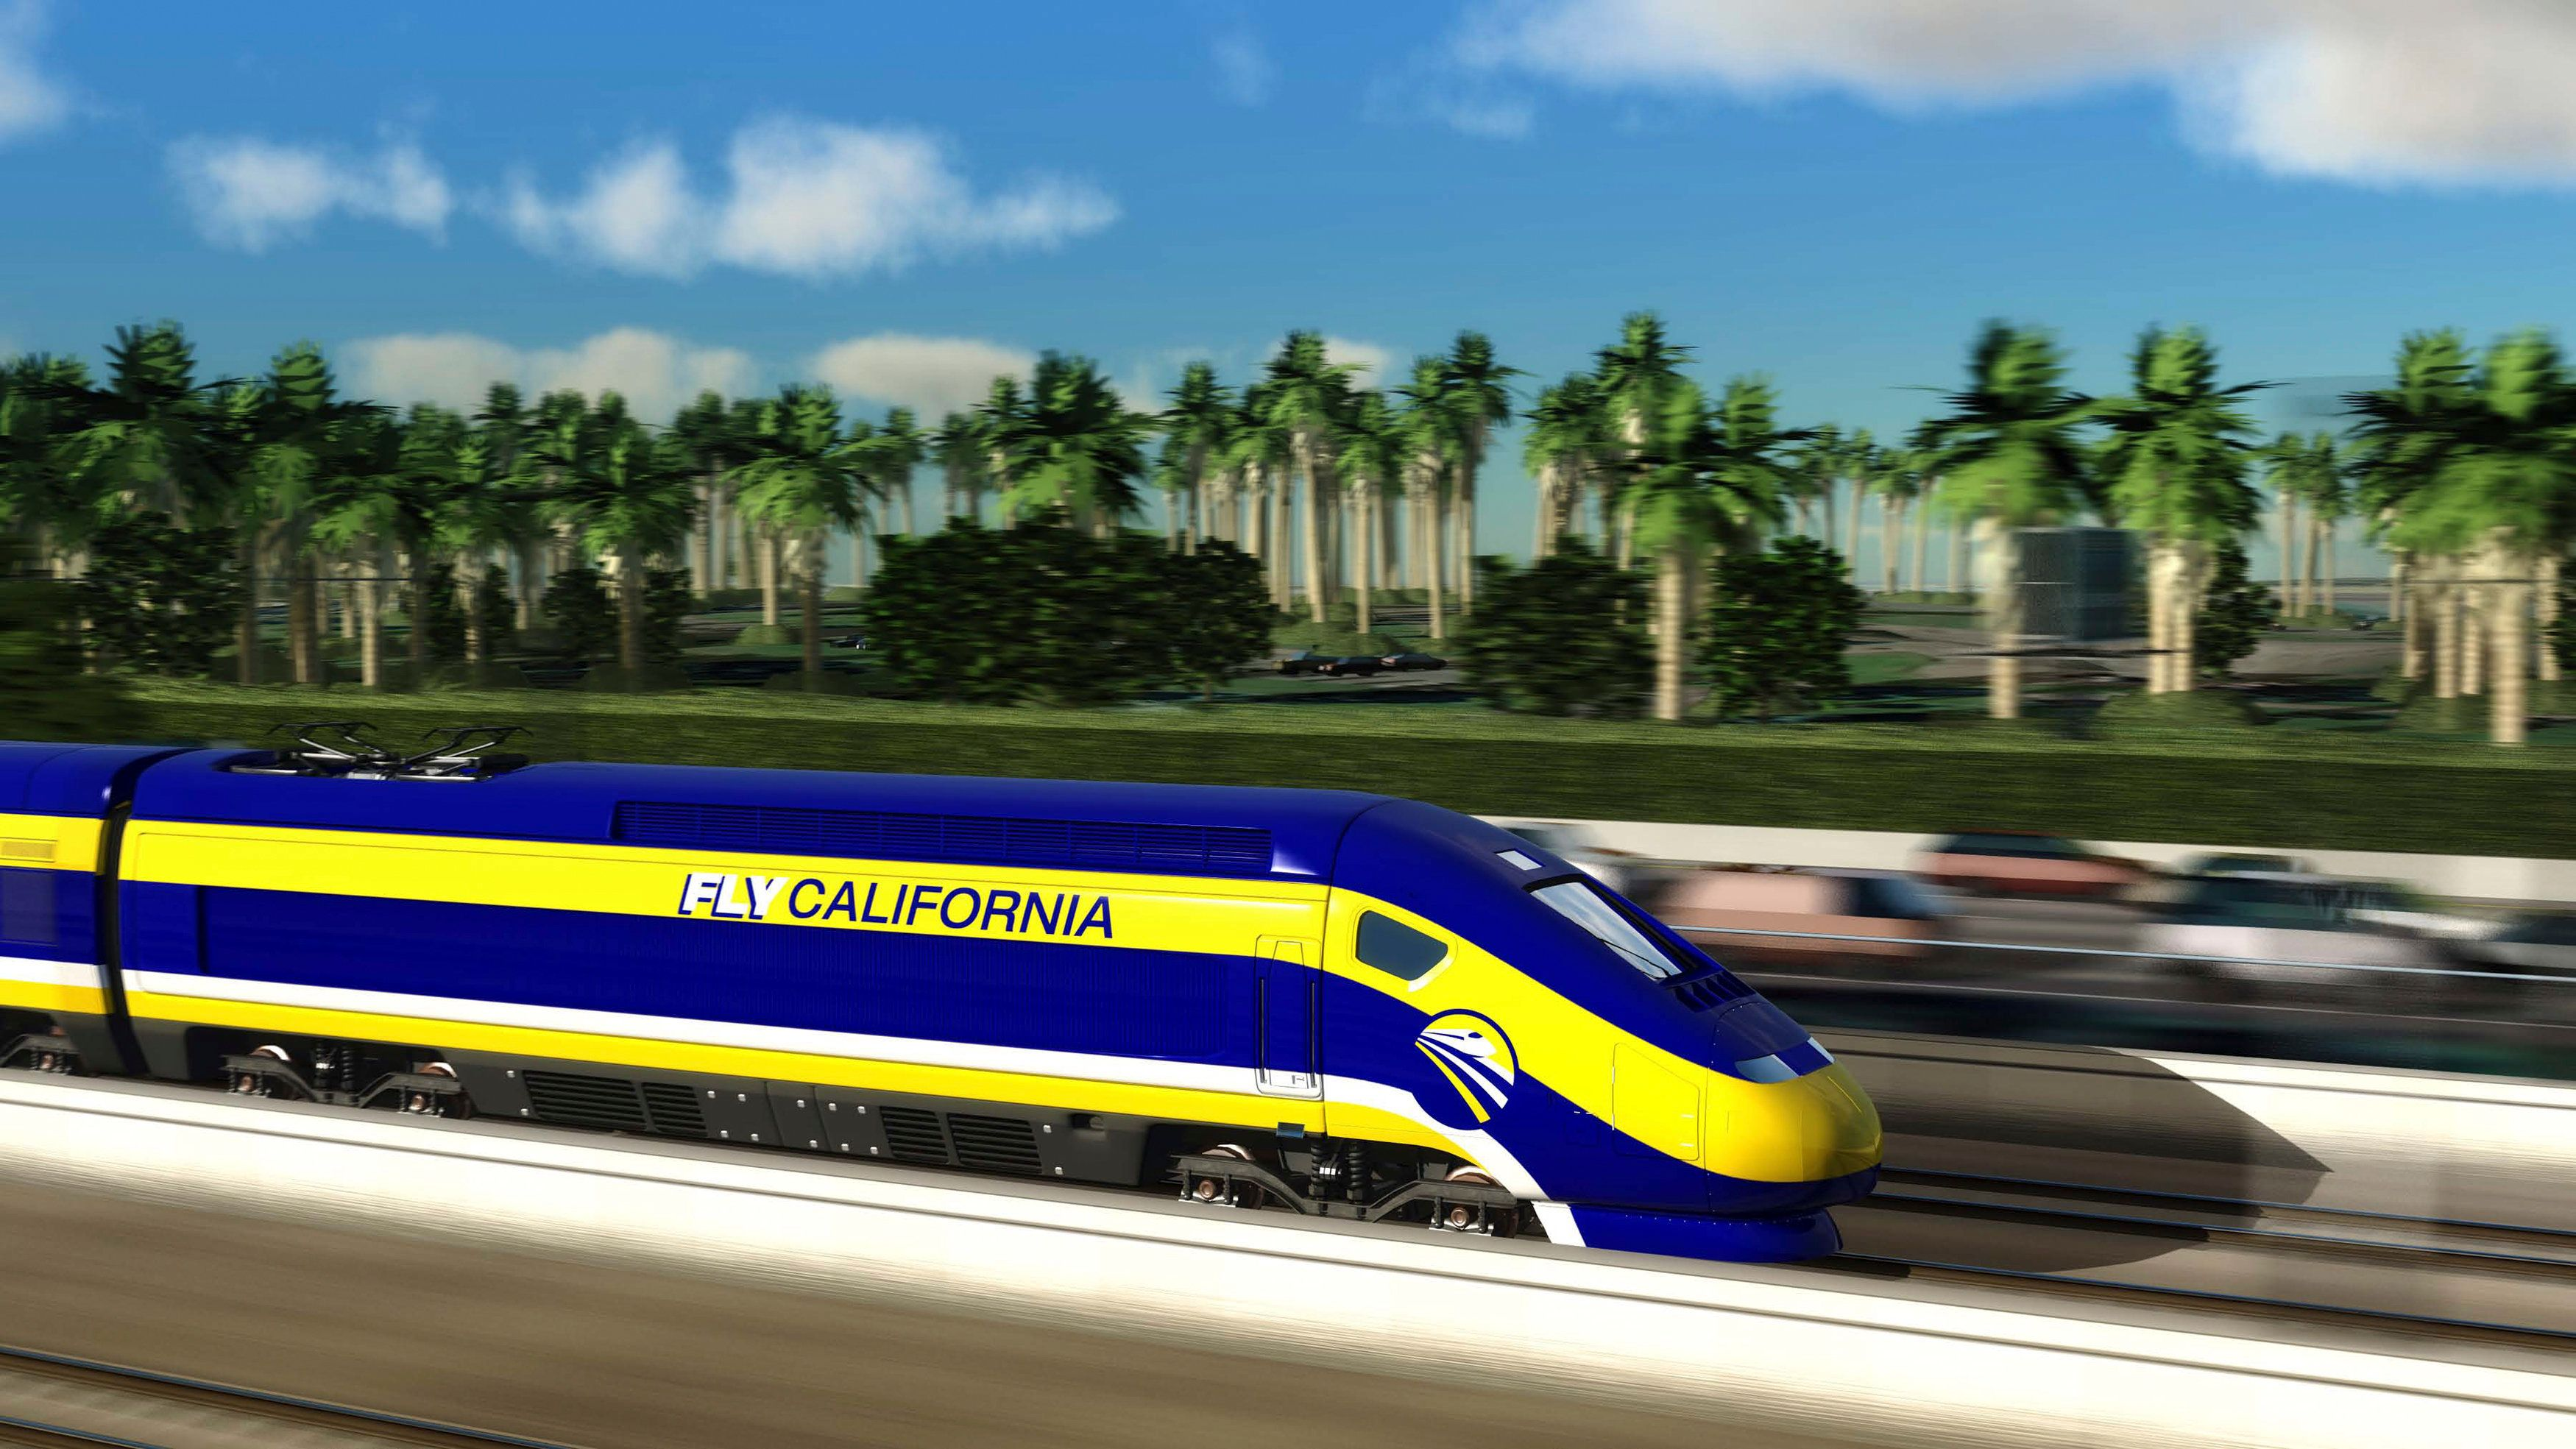 Trump Administration Says It Will Rescind 929 Million In Funds For California High-Speed Rail